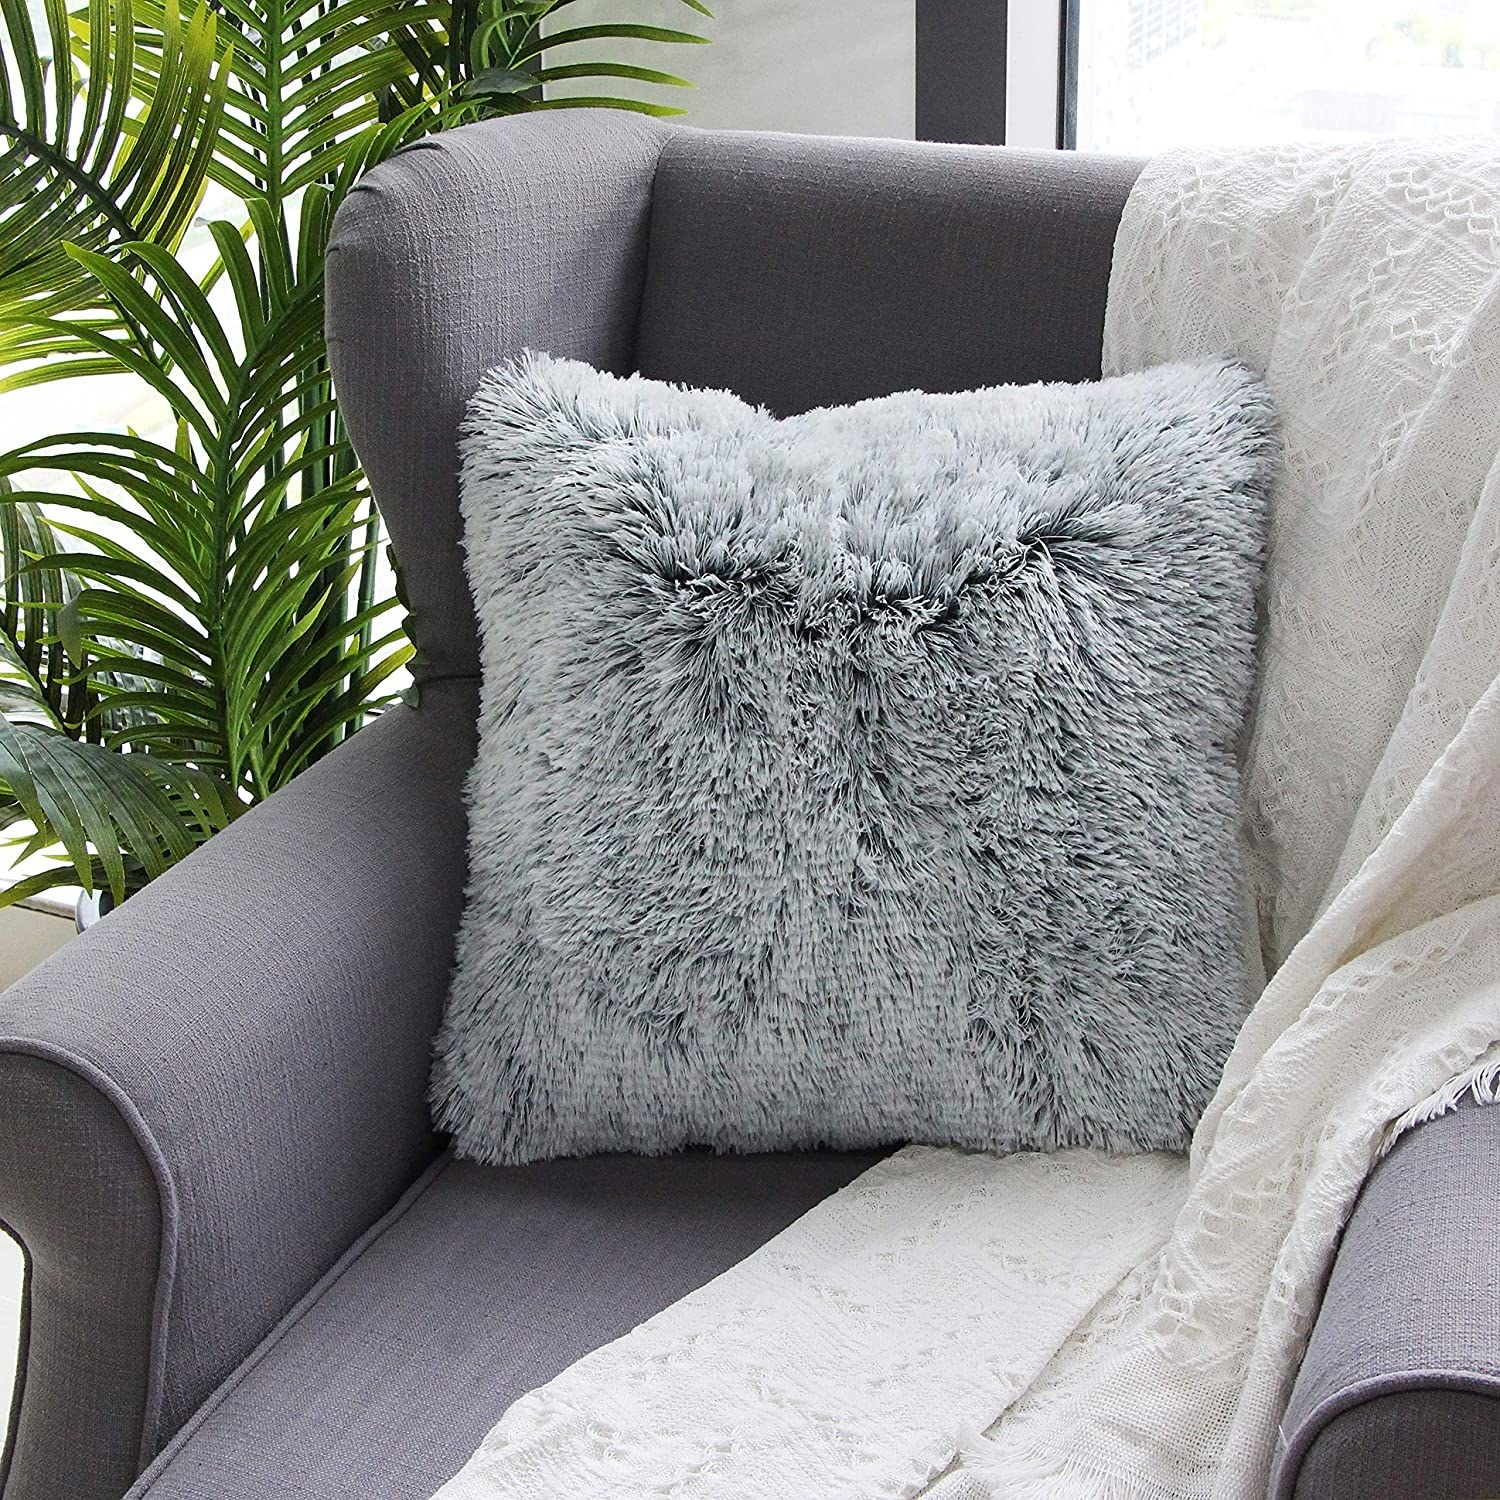 A grey faux fur square pillow on a chair